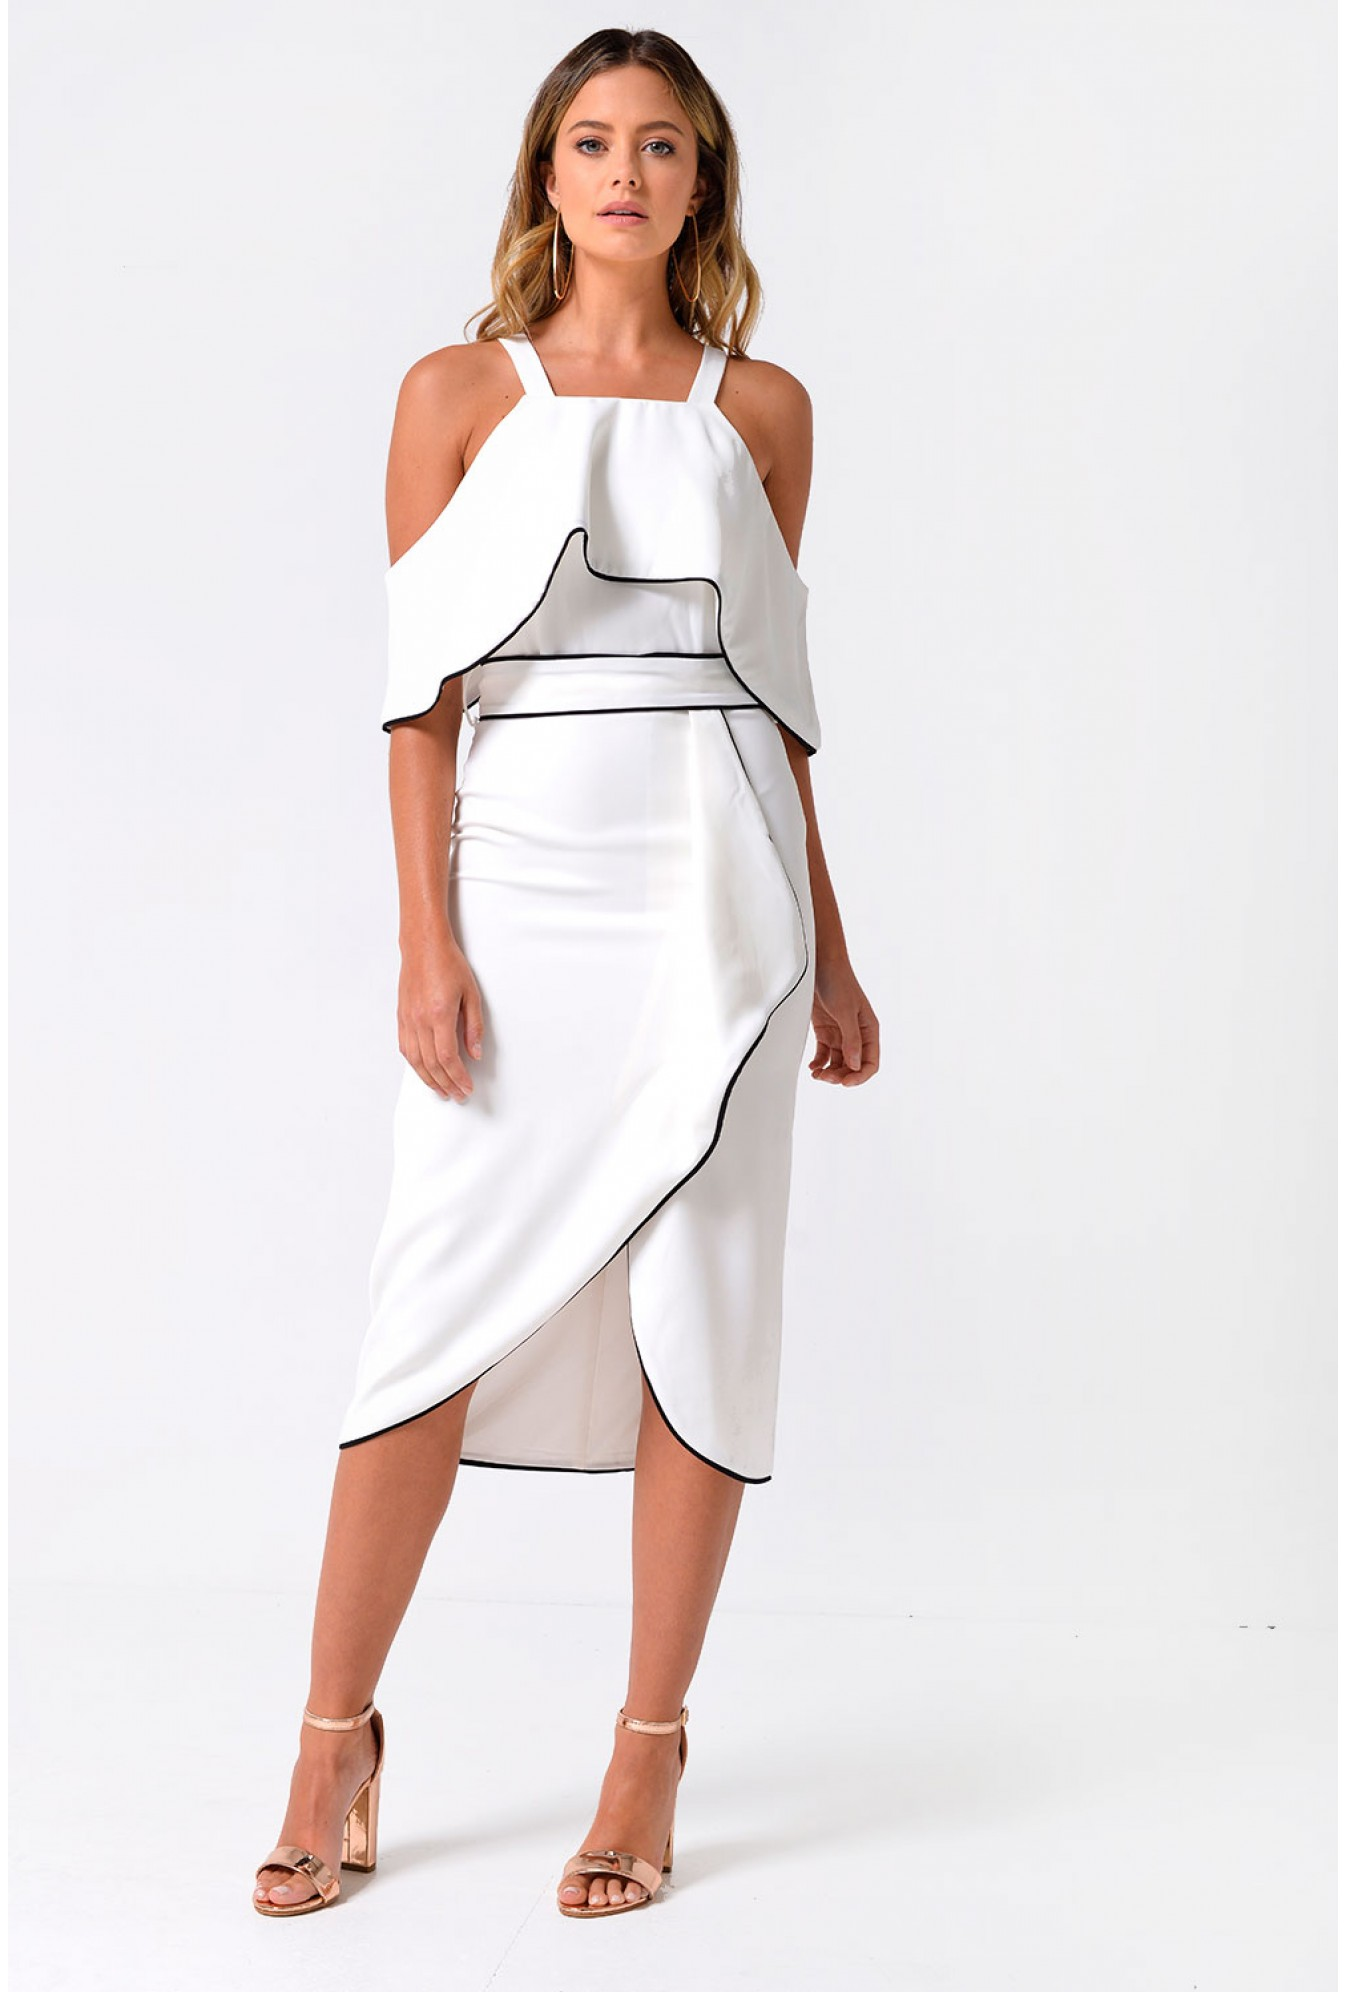 52686fabf1d More Views. Lola Off Shoulder Contrast Piping Dress in White. Video  Gallery. Lavish Alice